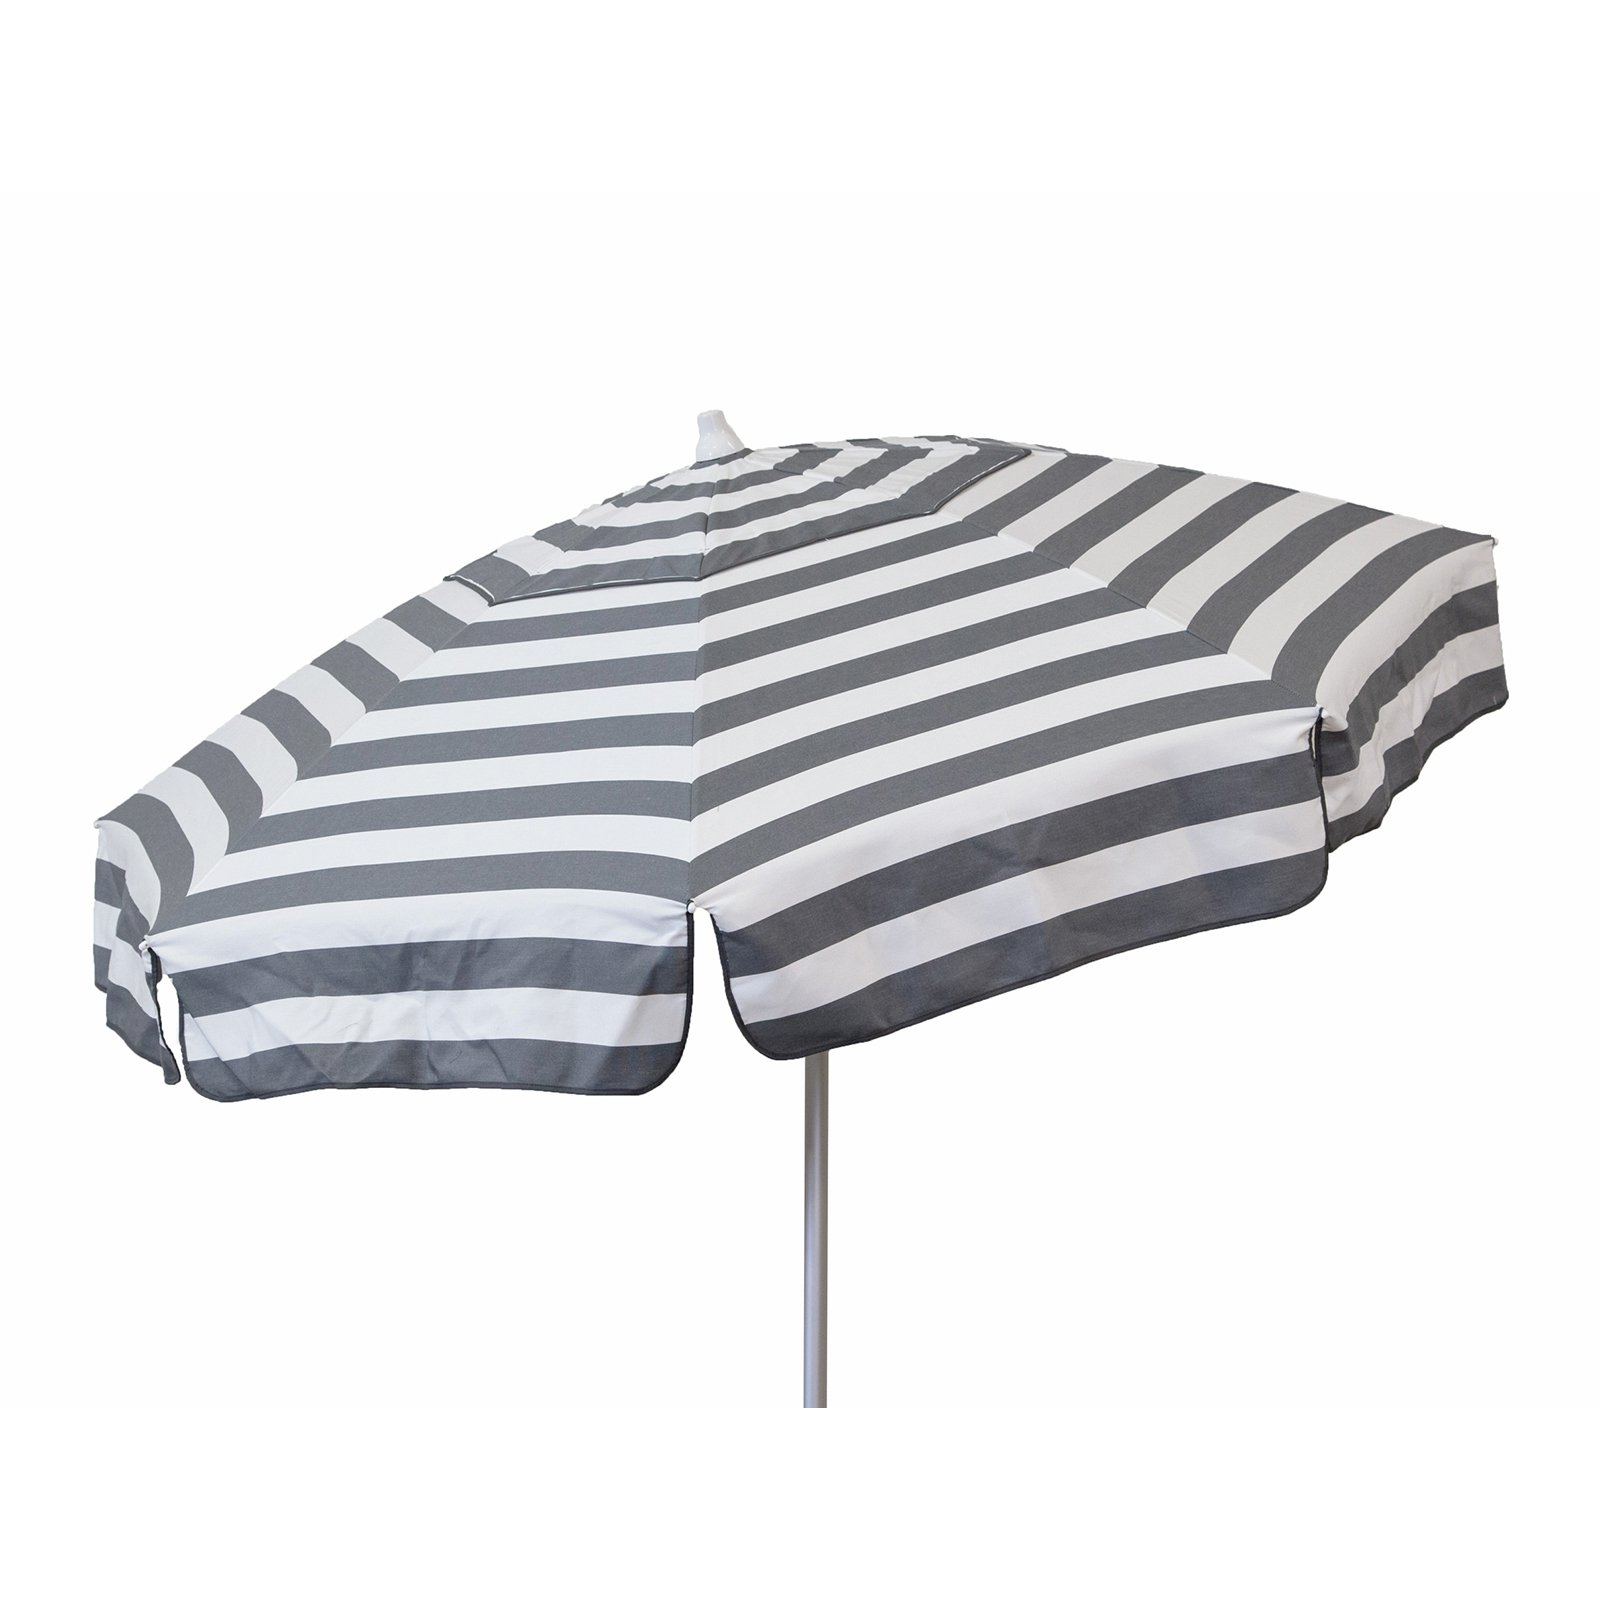 DestinationGear Italian 6' Umbrella Acrylic Stripes Steel Grey and White Beach Pole